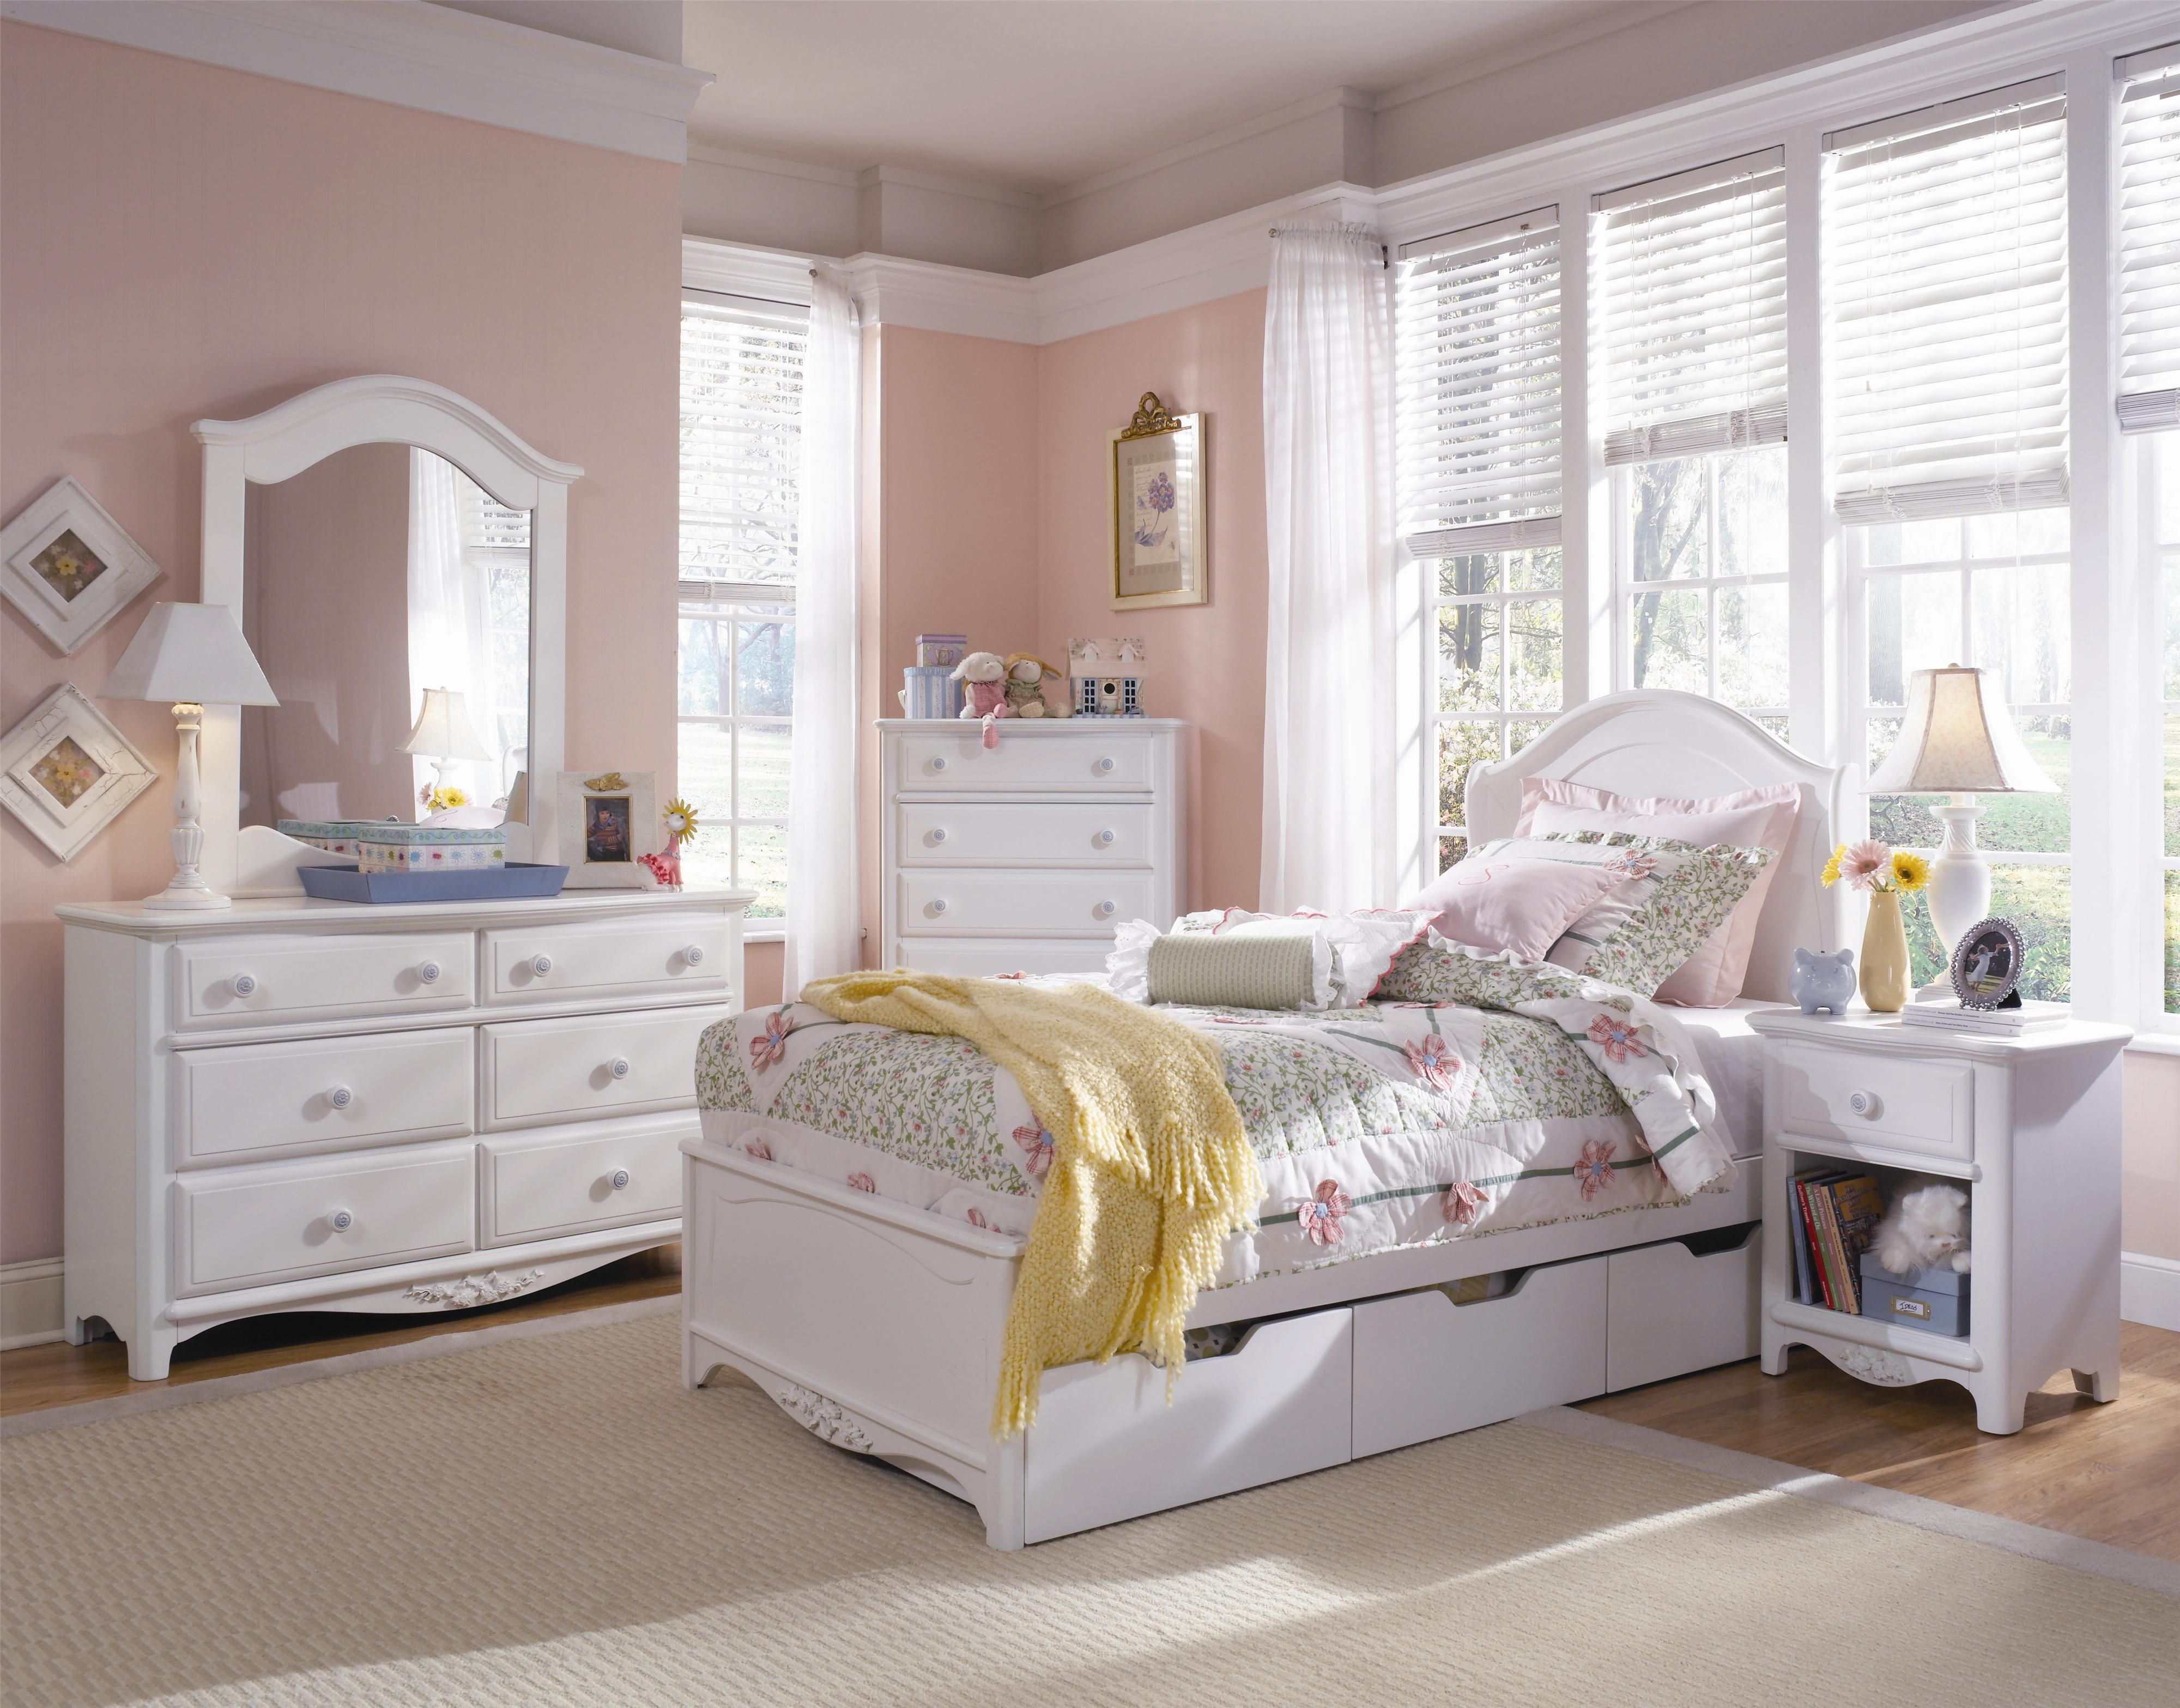 haley 012 by lea industries sheely s furniture appliance